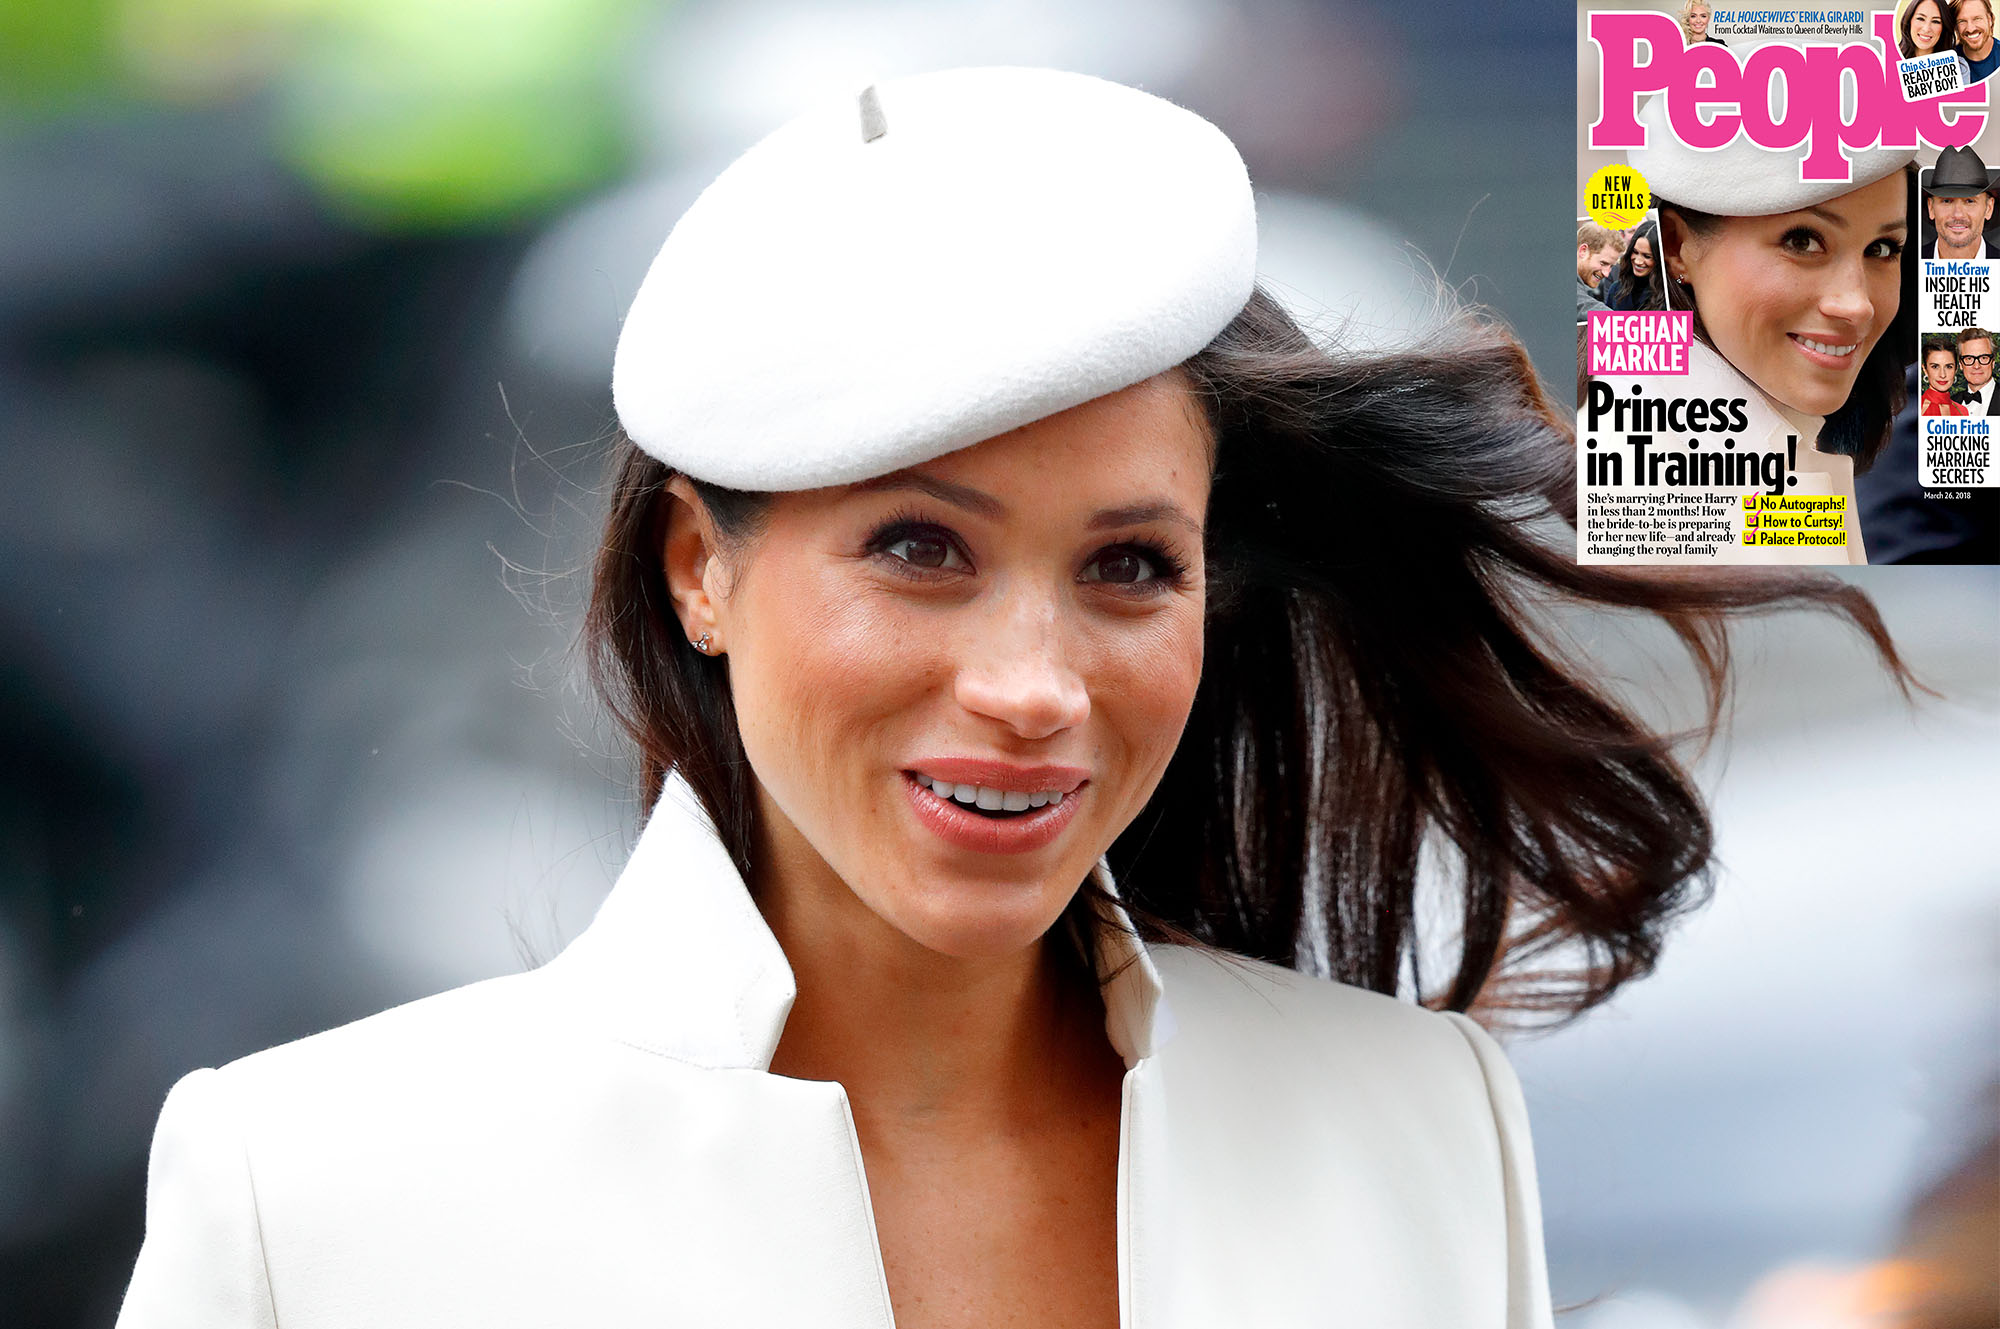 Meghan Markle's Royal Wardrobe: Here's Who Pays for It, and Why She Can't Accept Free Clothes meghan-story1